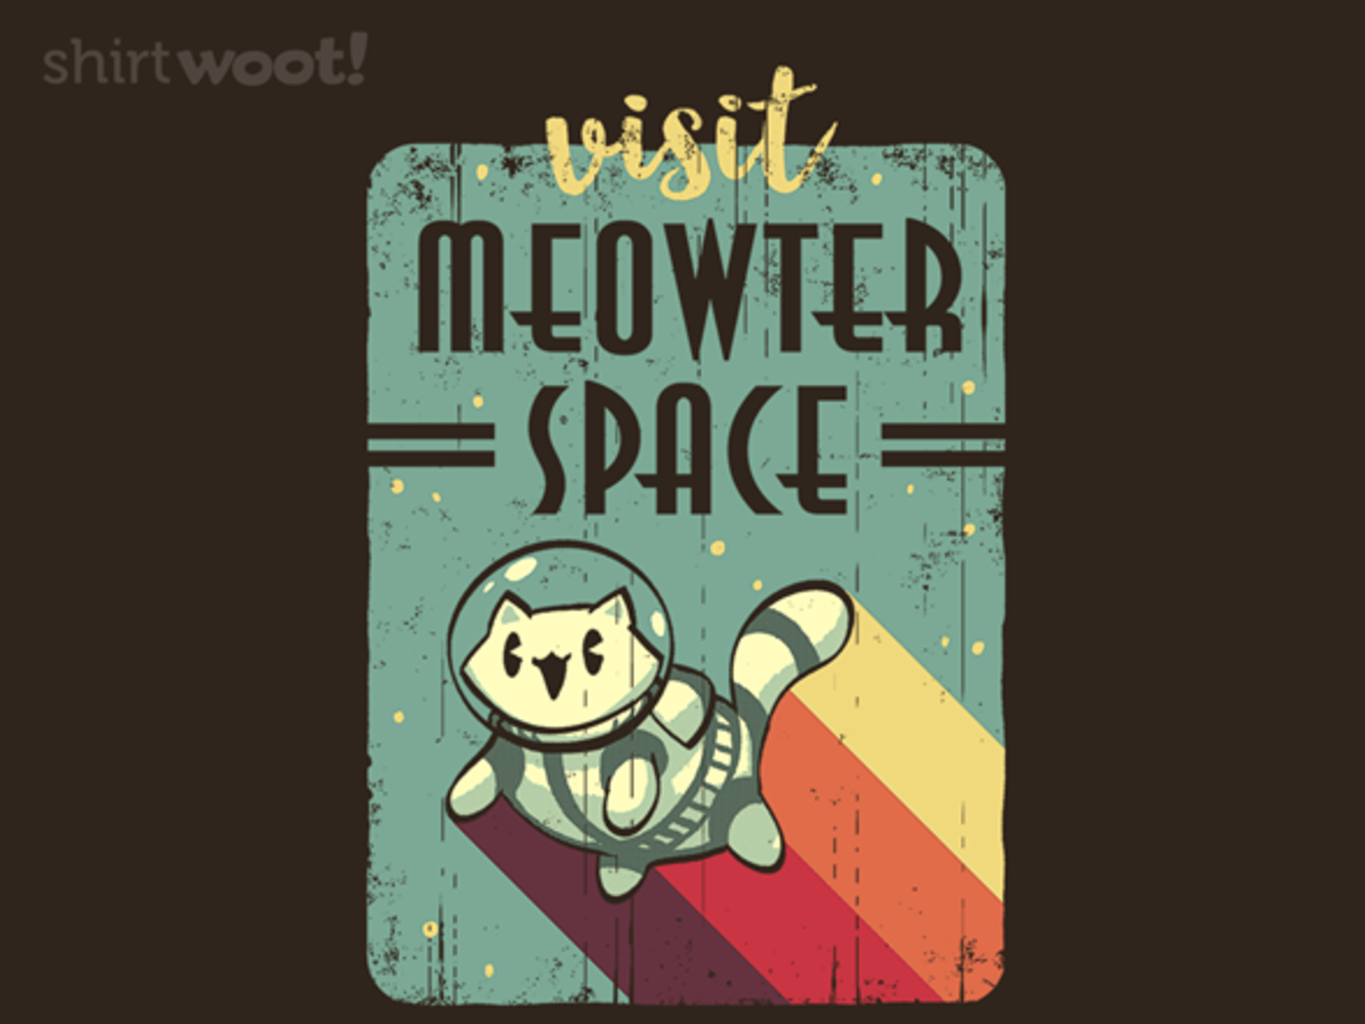 Woot!: Meowter Space